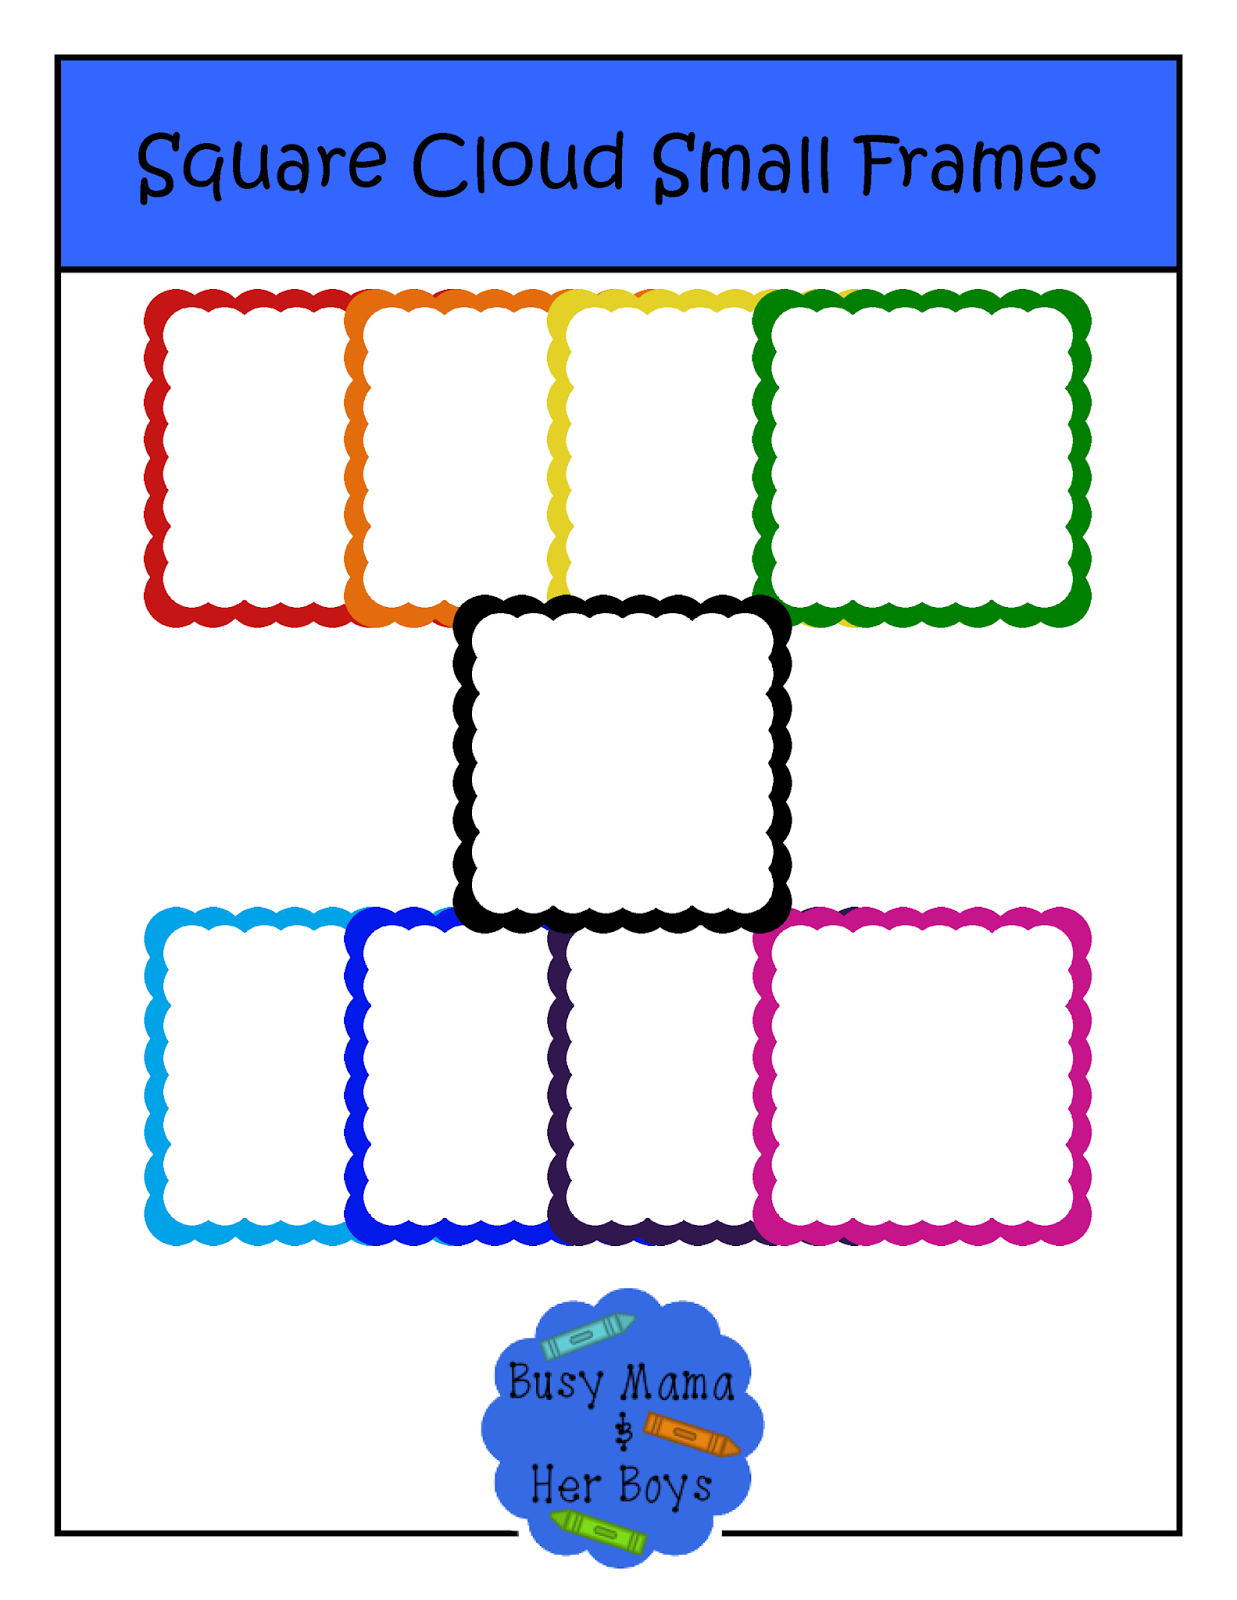 http://www.teacherspayteachers.com/Product/Square-Cloud-Small-Frames-1390040